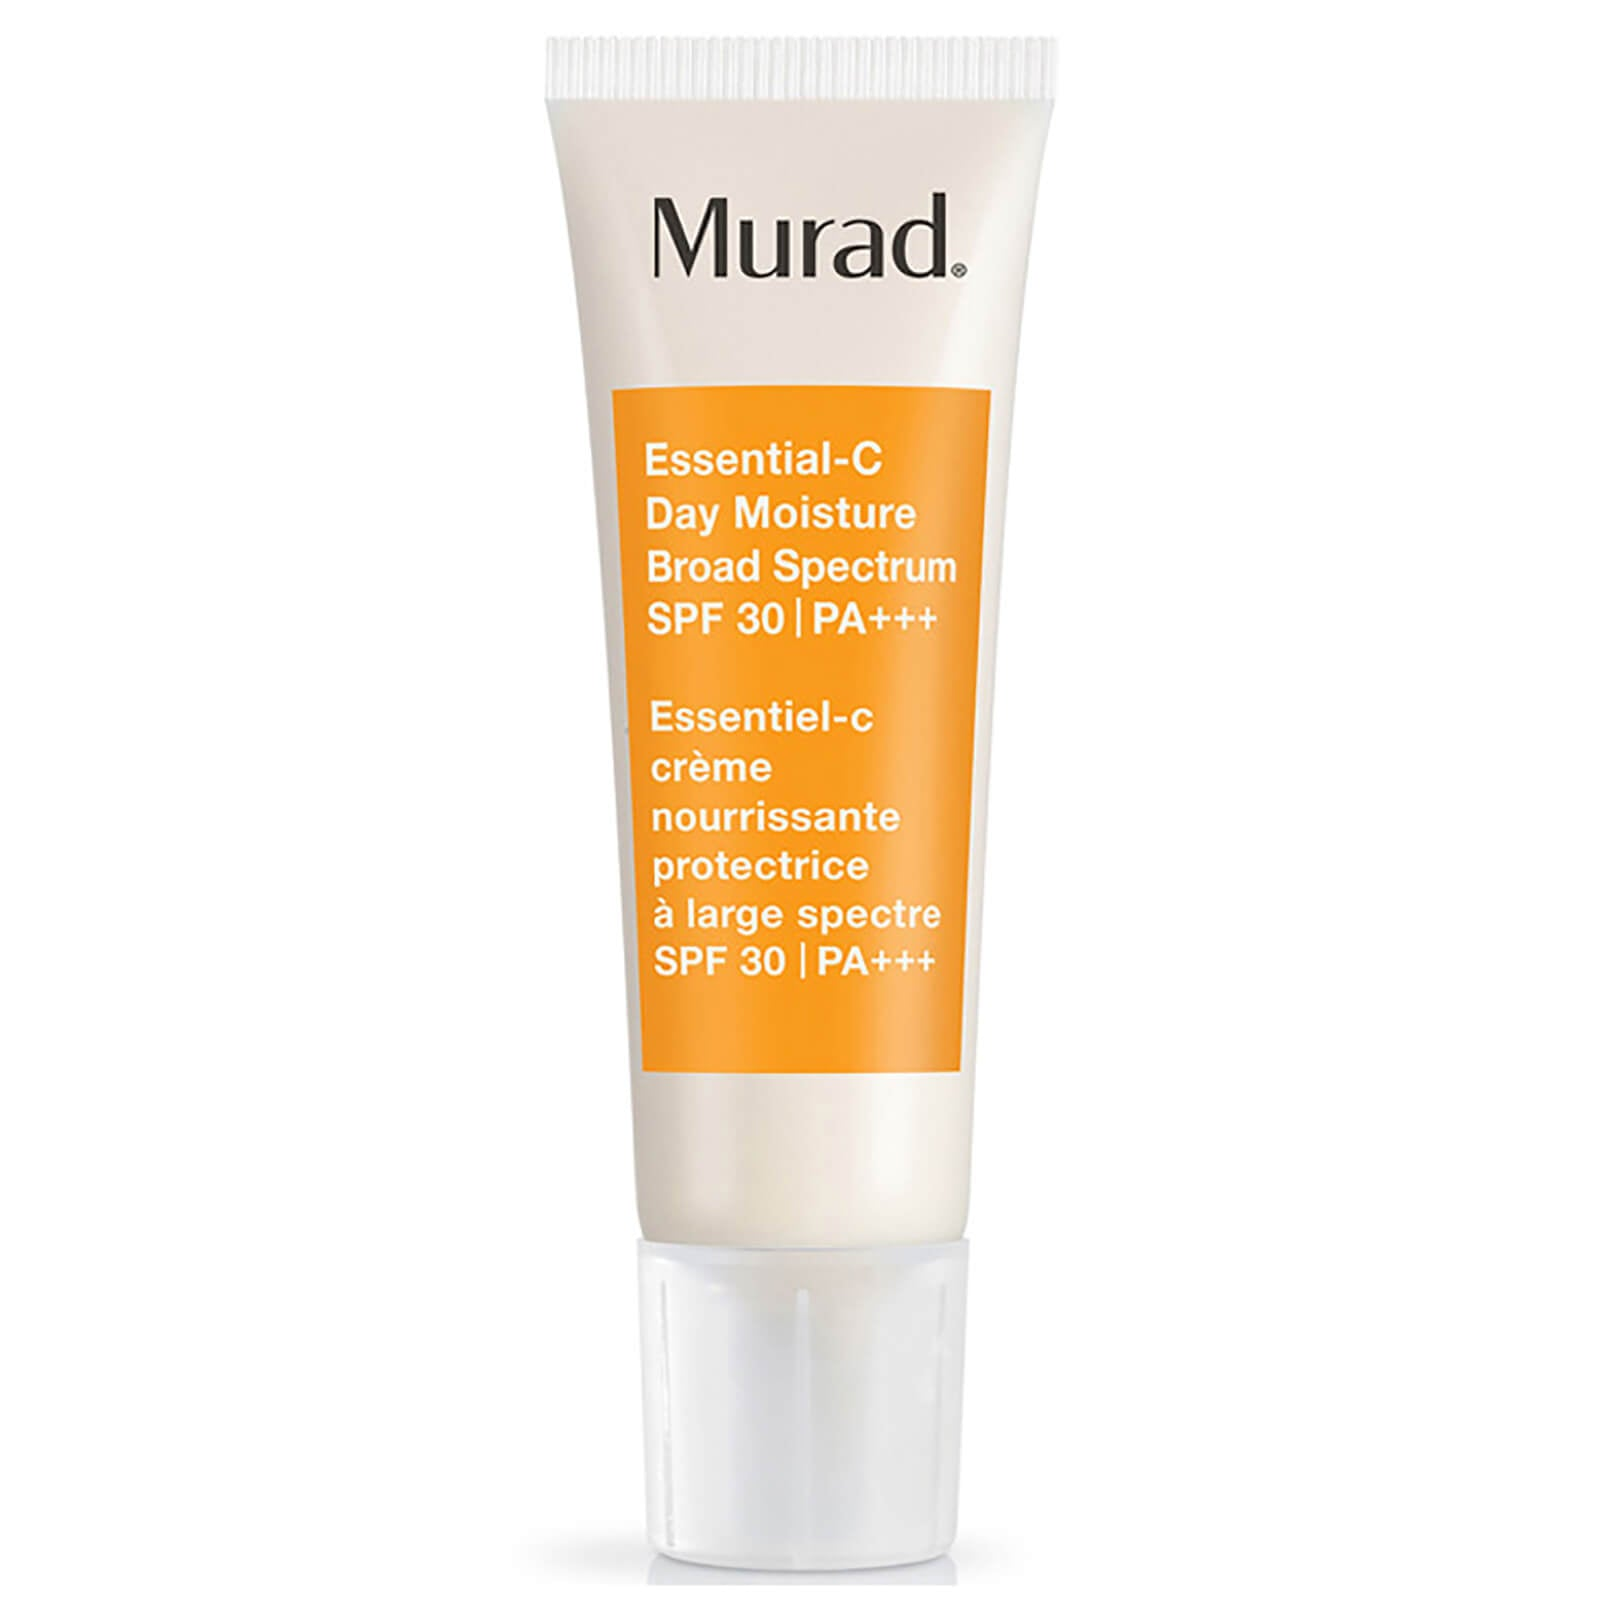 Essential-C Day Moisture SPF 30 - The Perfect Products